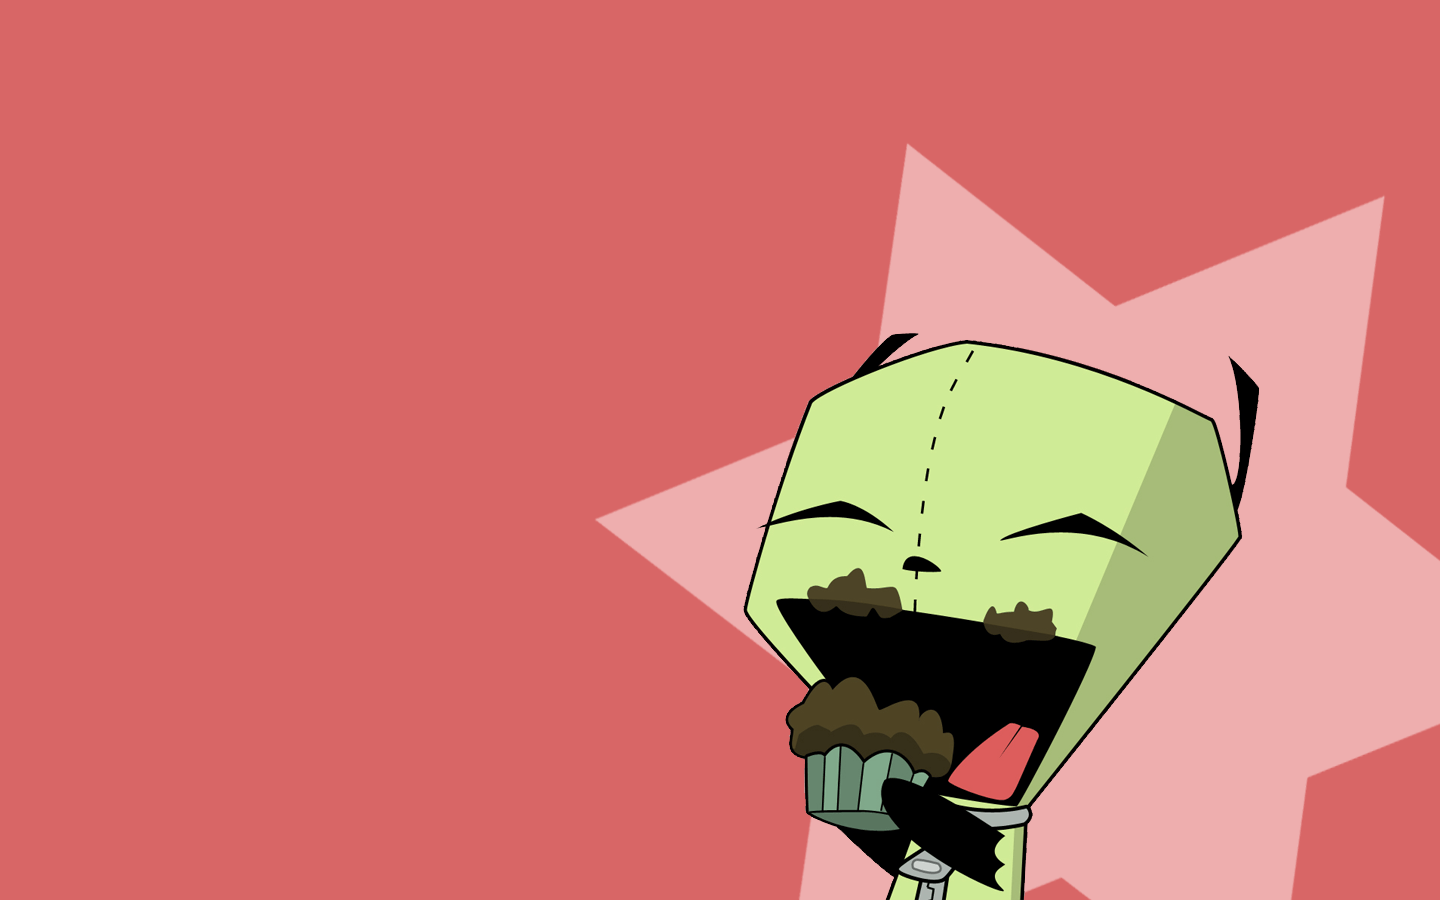 grr and zim wallpaper - photo #6